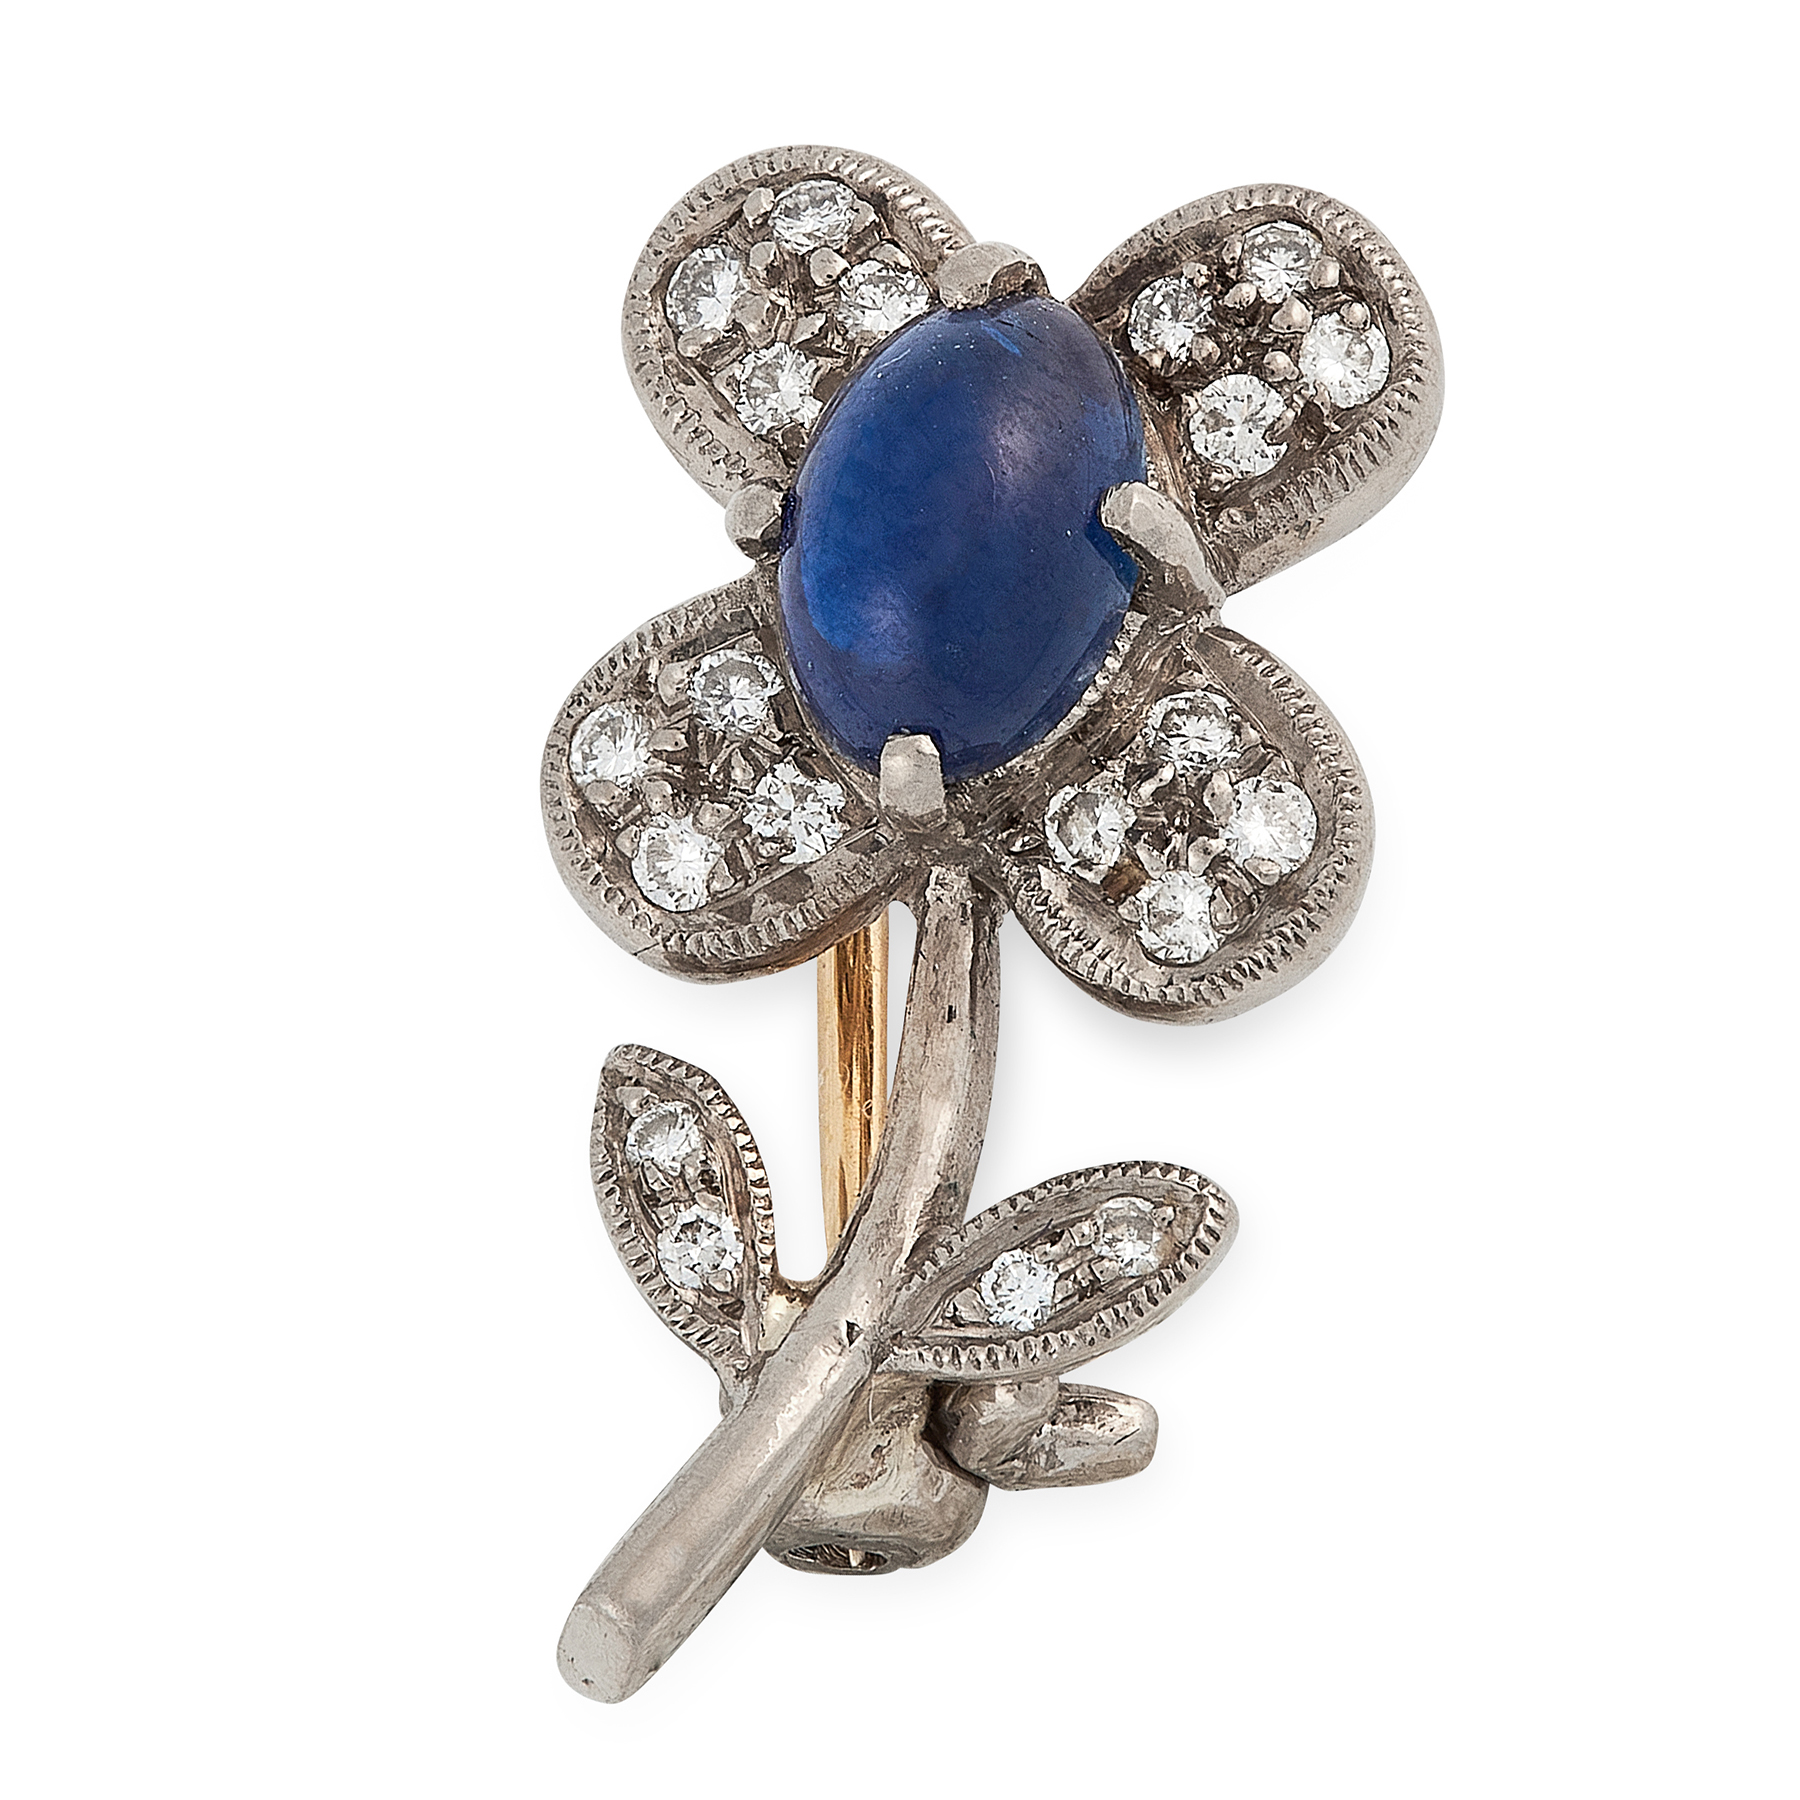 A SAPPHIRE AND DIAMOND FLOWER BROOCH in yellow and white gold, designed as a flower, set with an